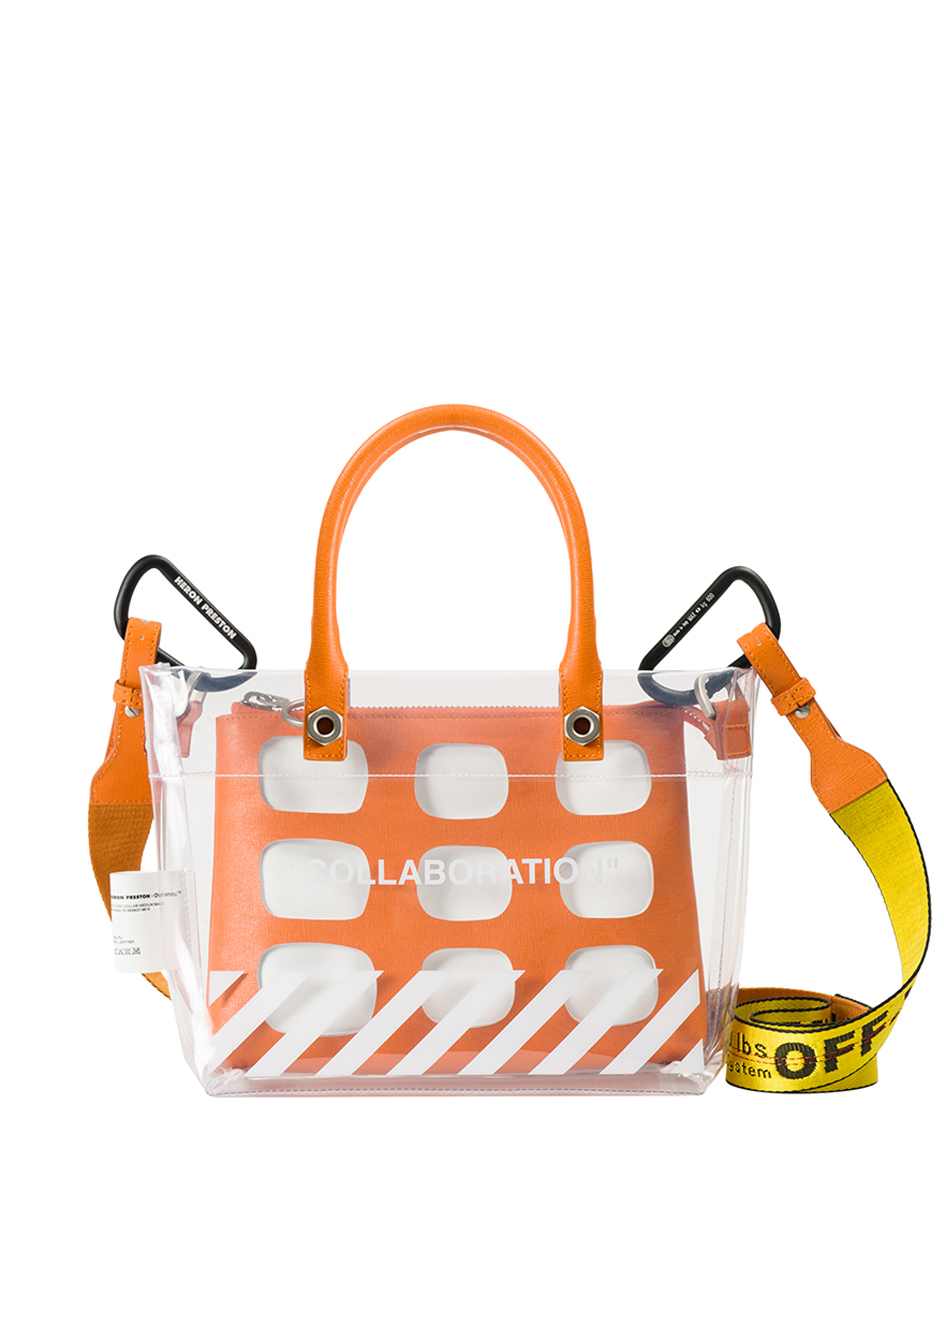 84eb78841c7919 Kolor Magazine Off-White and Heron Preston Have Collaborated on A Unisex  Handbag 2.